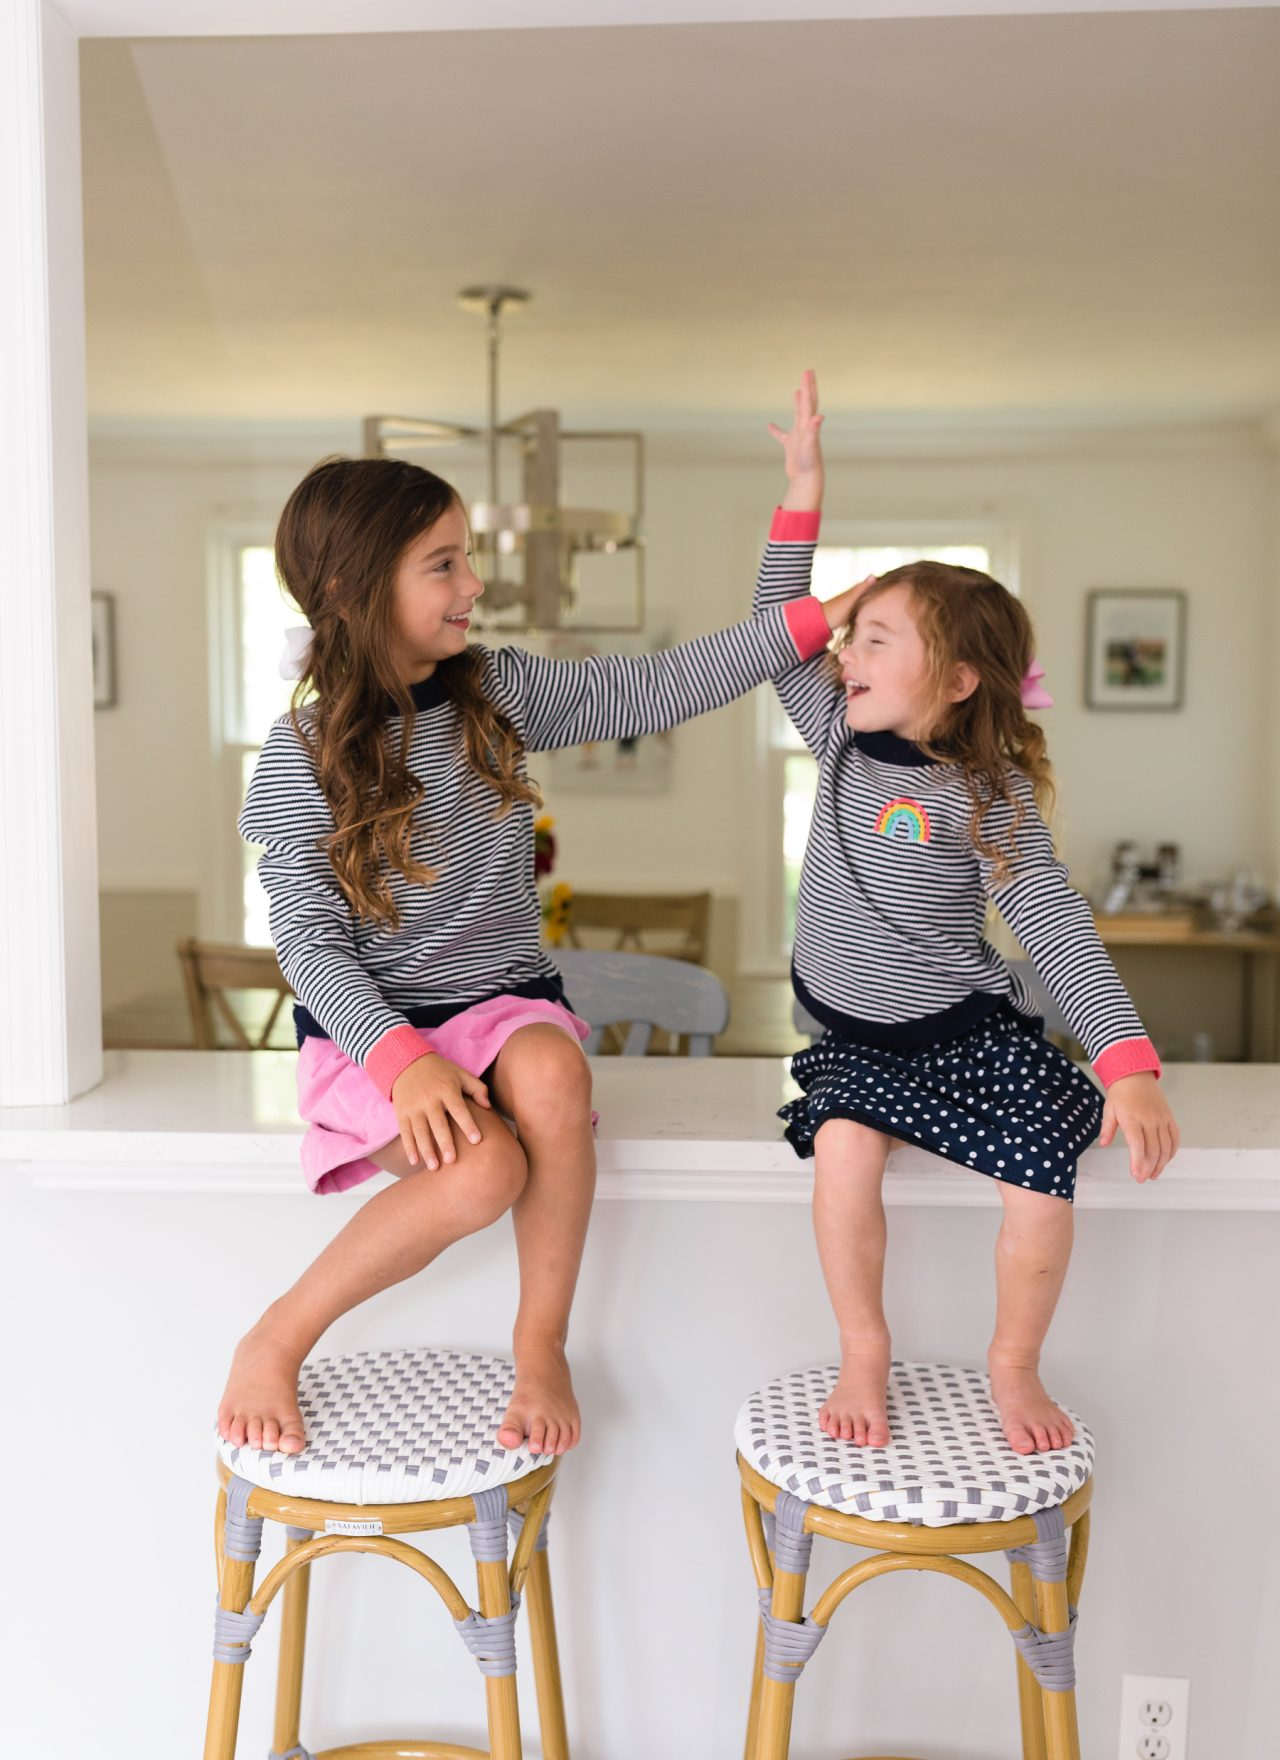 little girls being silly on counter before school